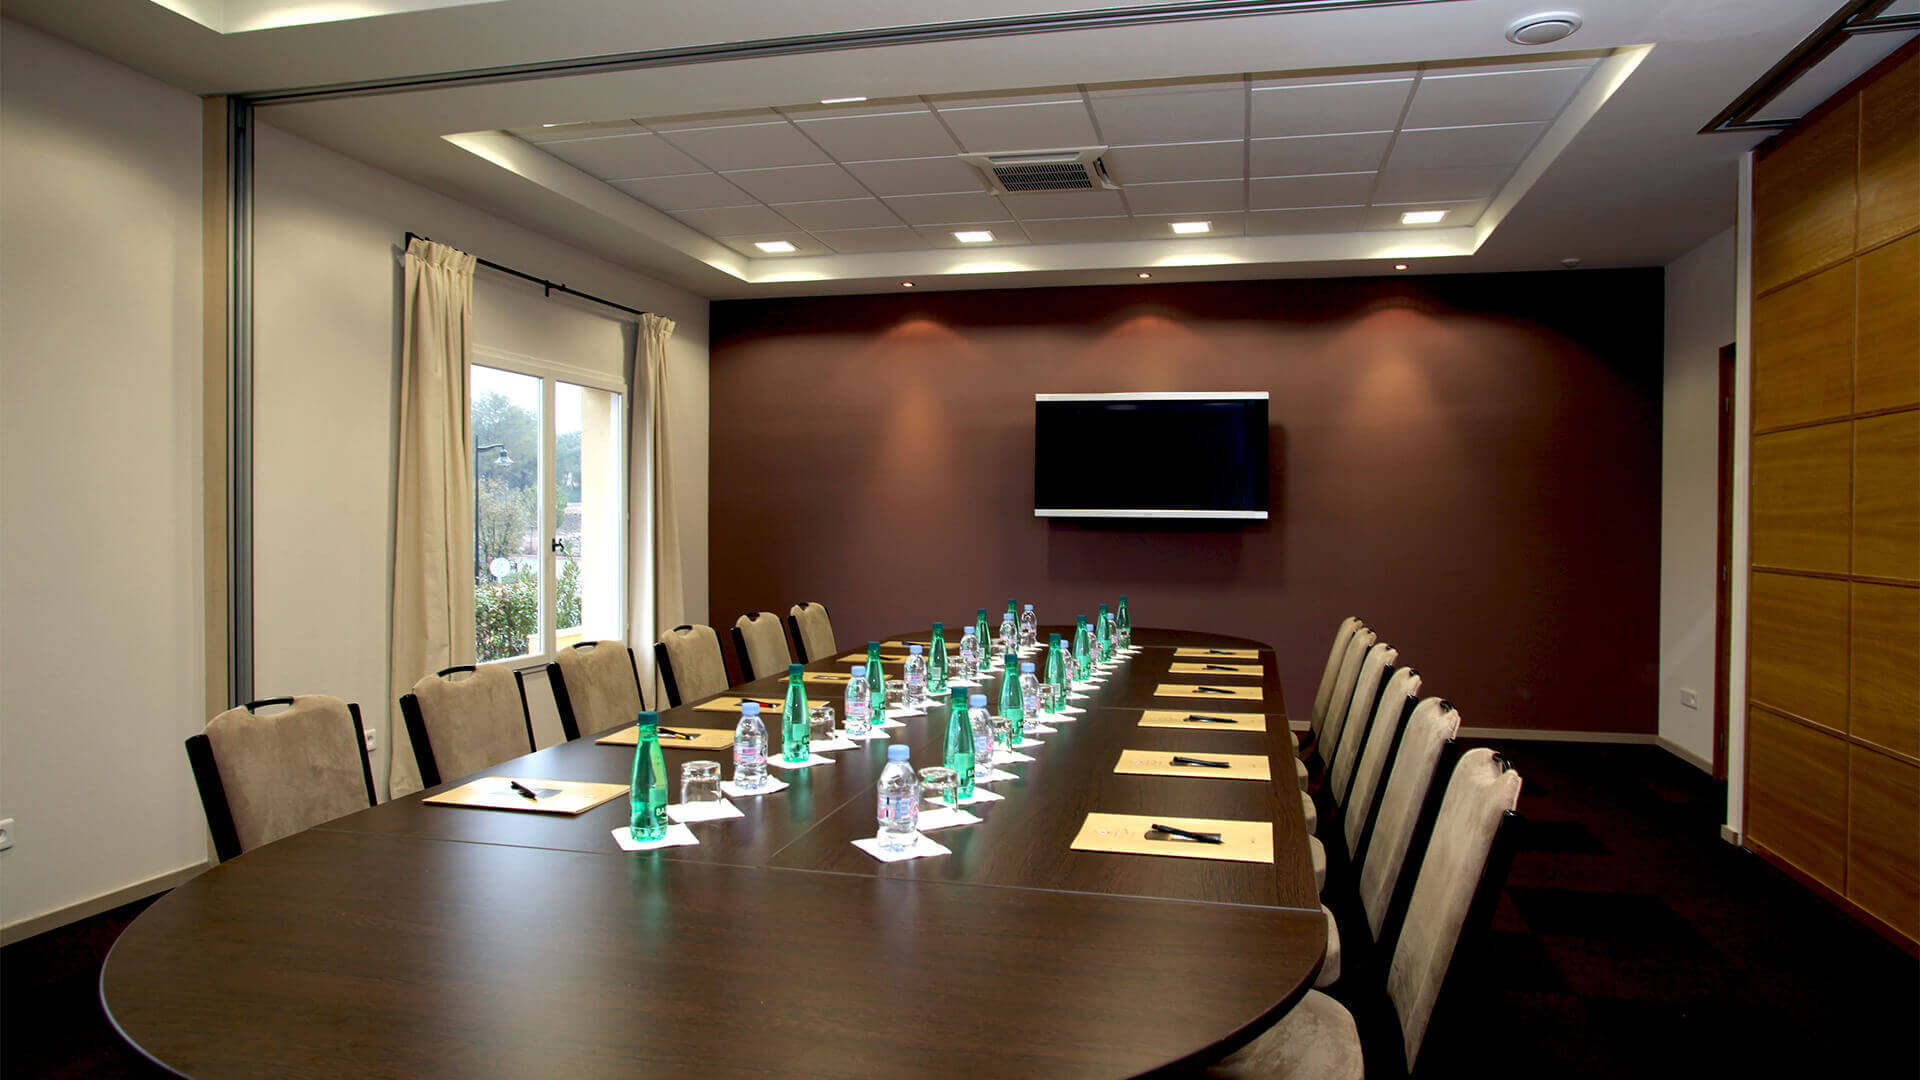 Provence golf and Spa conference room